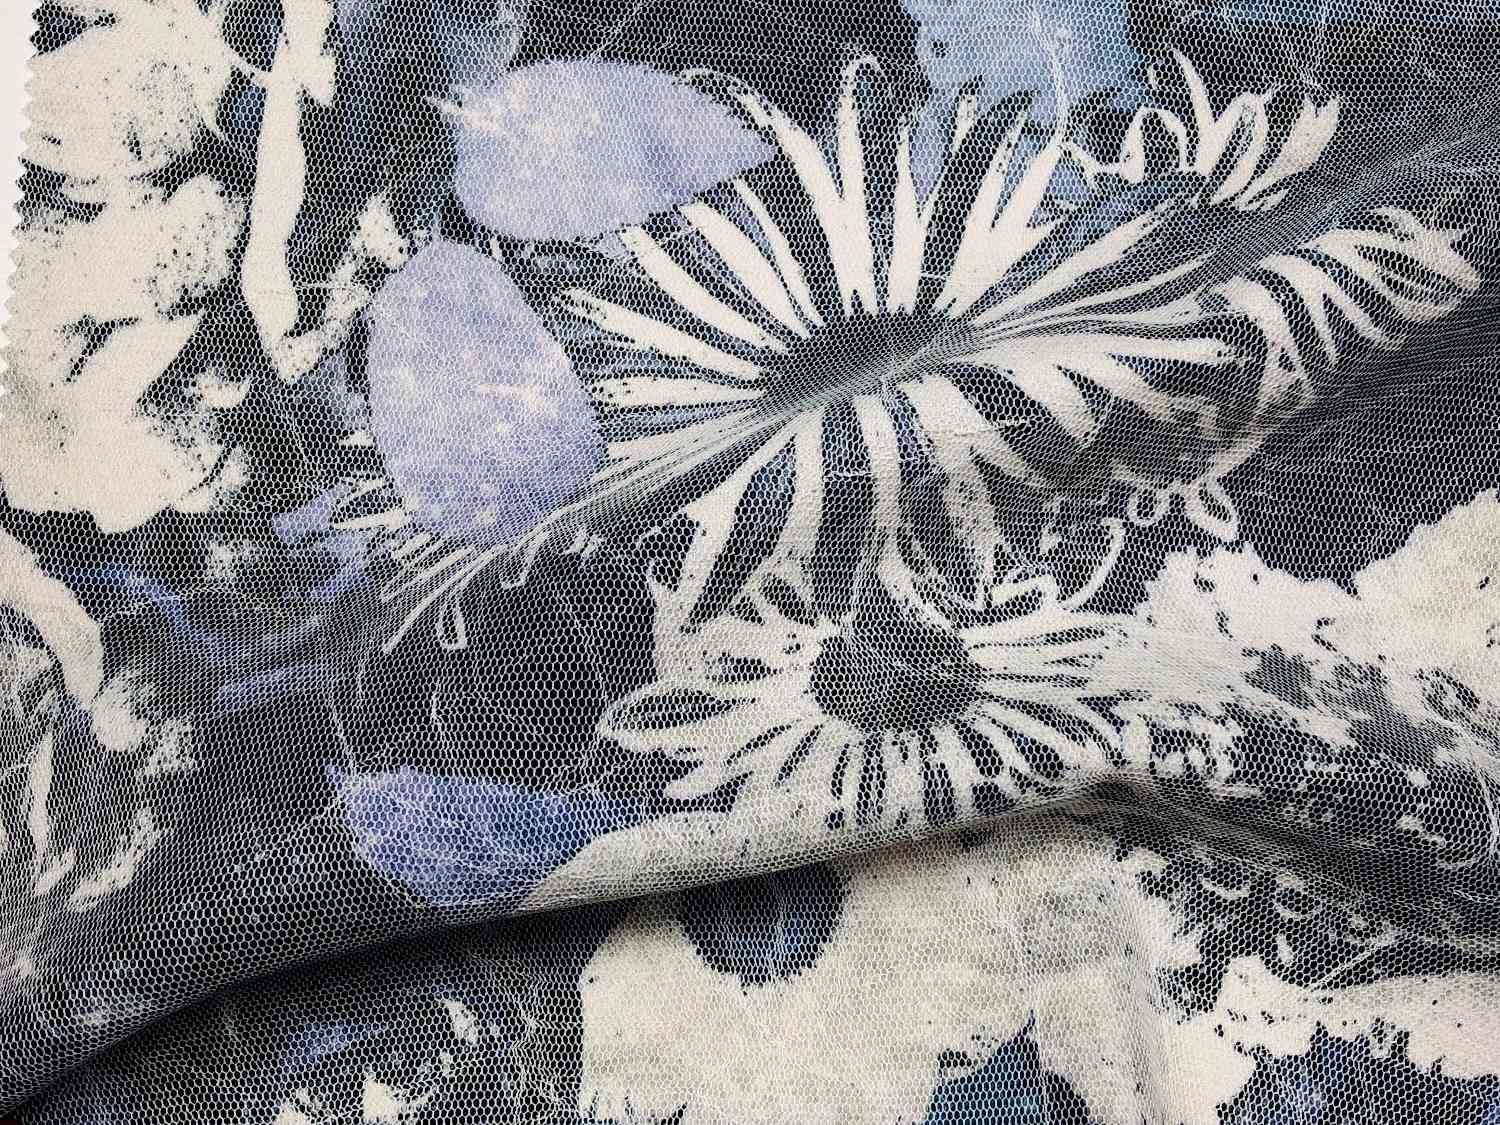 Printed Fabrics - cretulle - CRETULLE Polyester